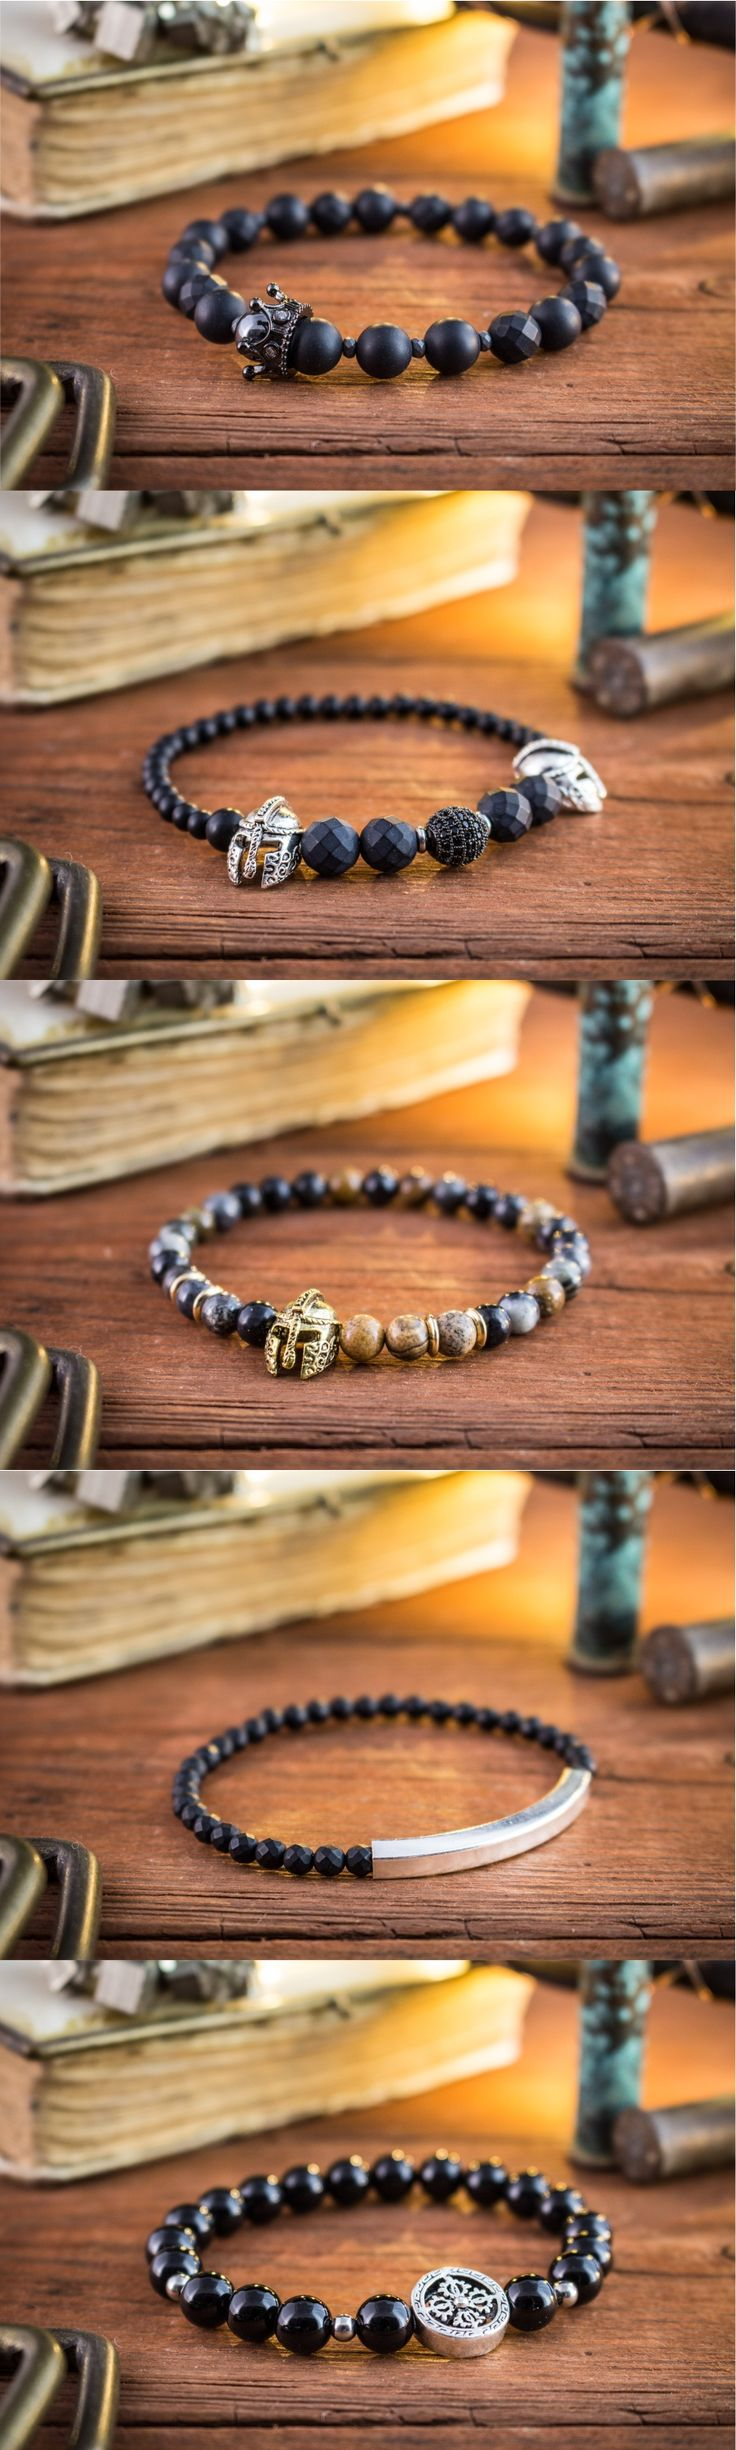 Selection of gemstone bracelets for men